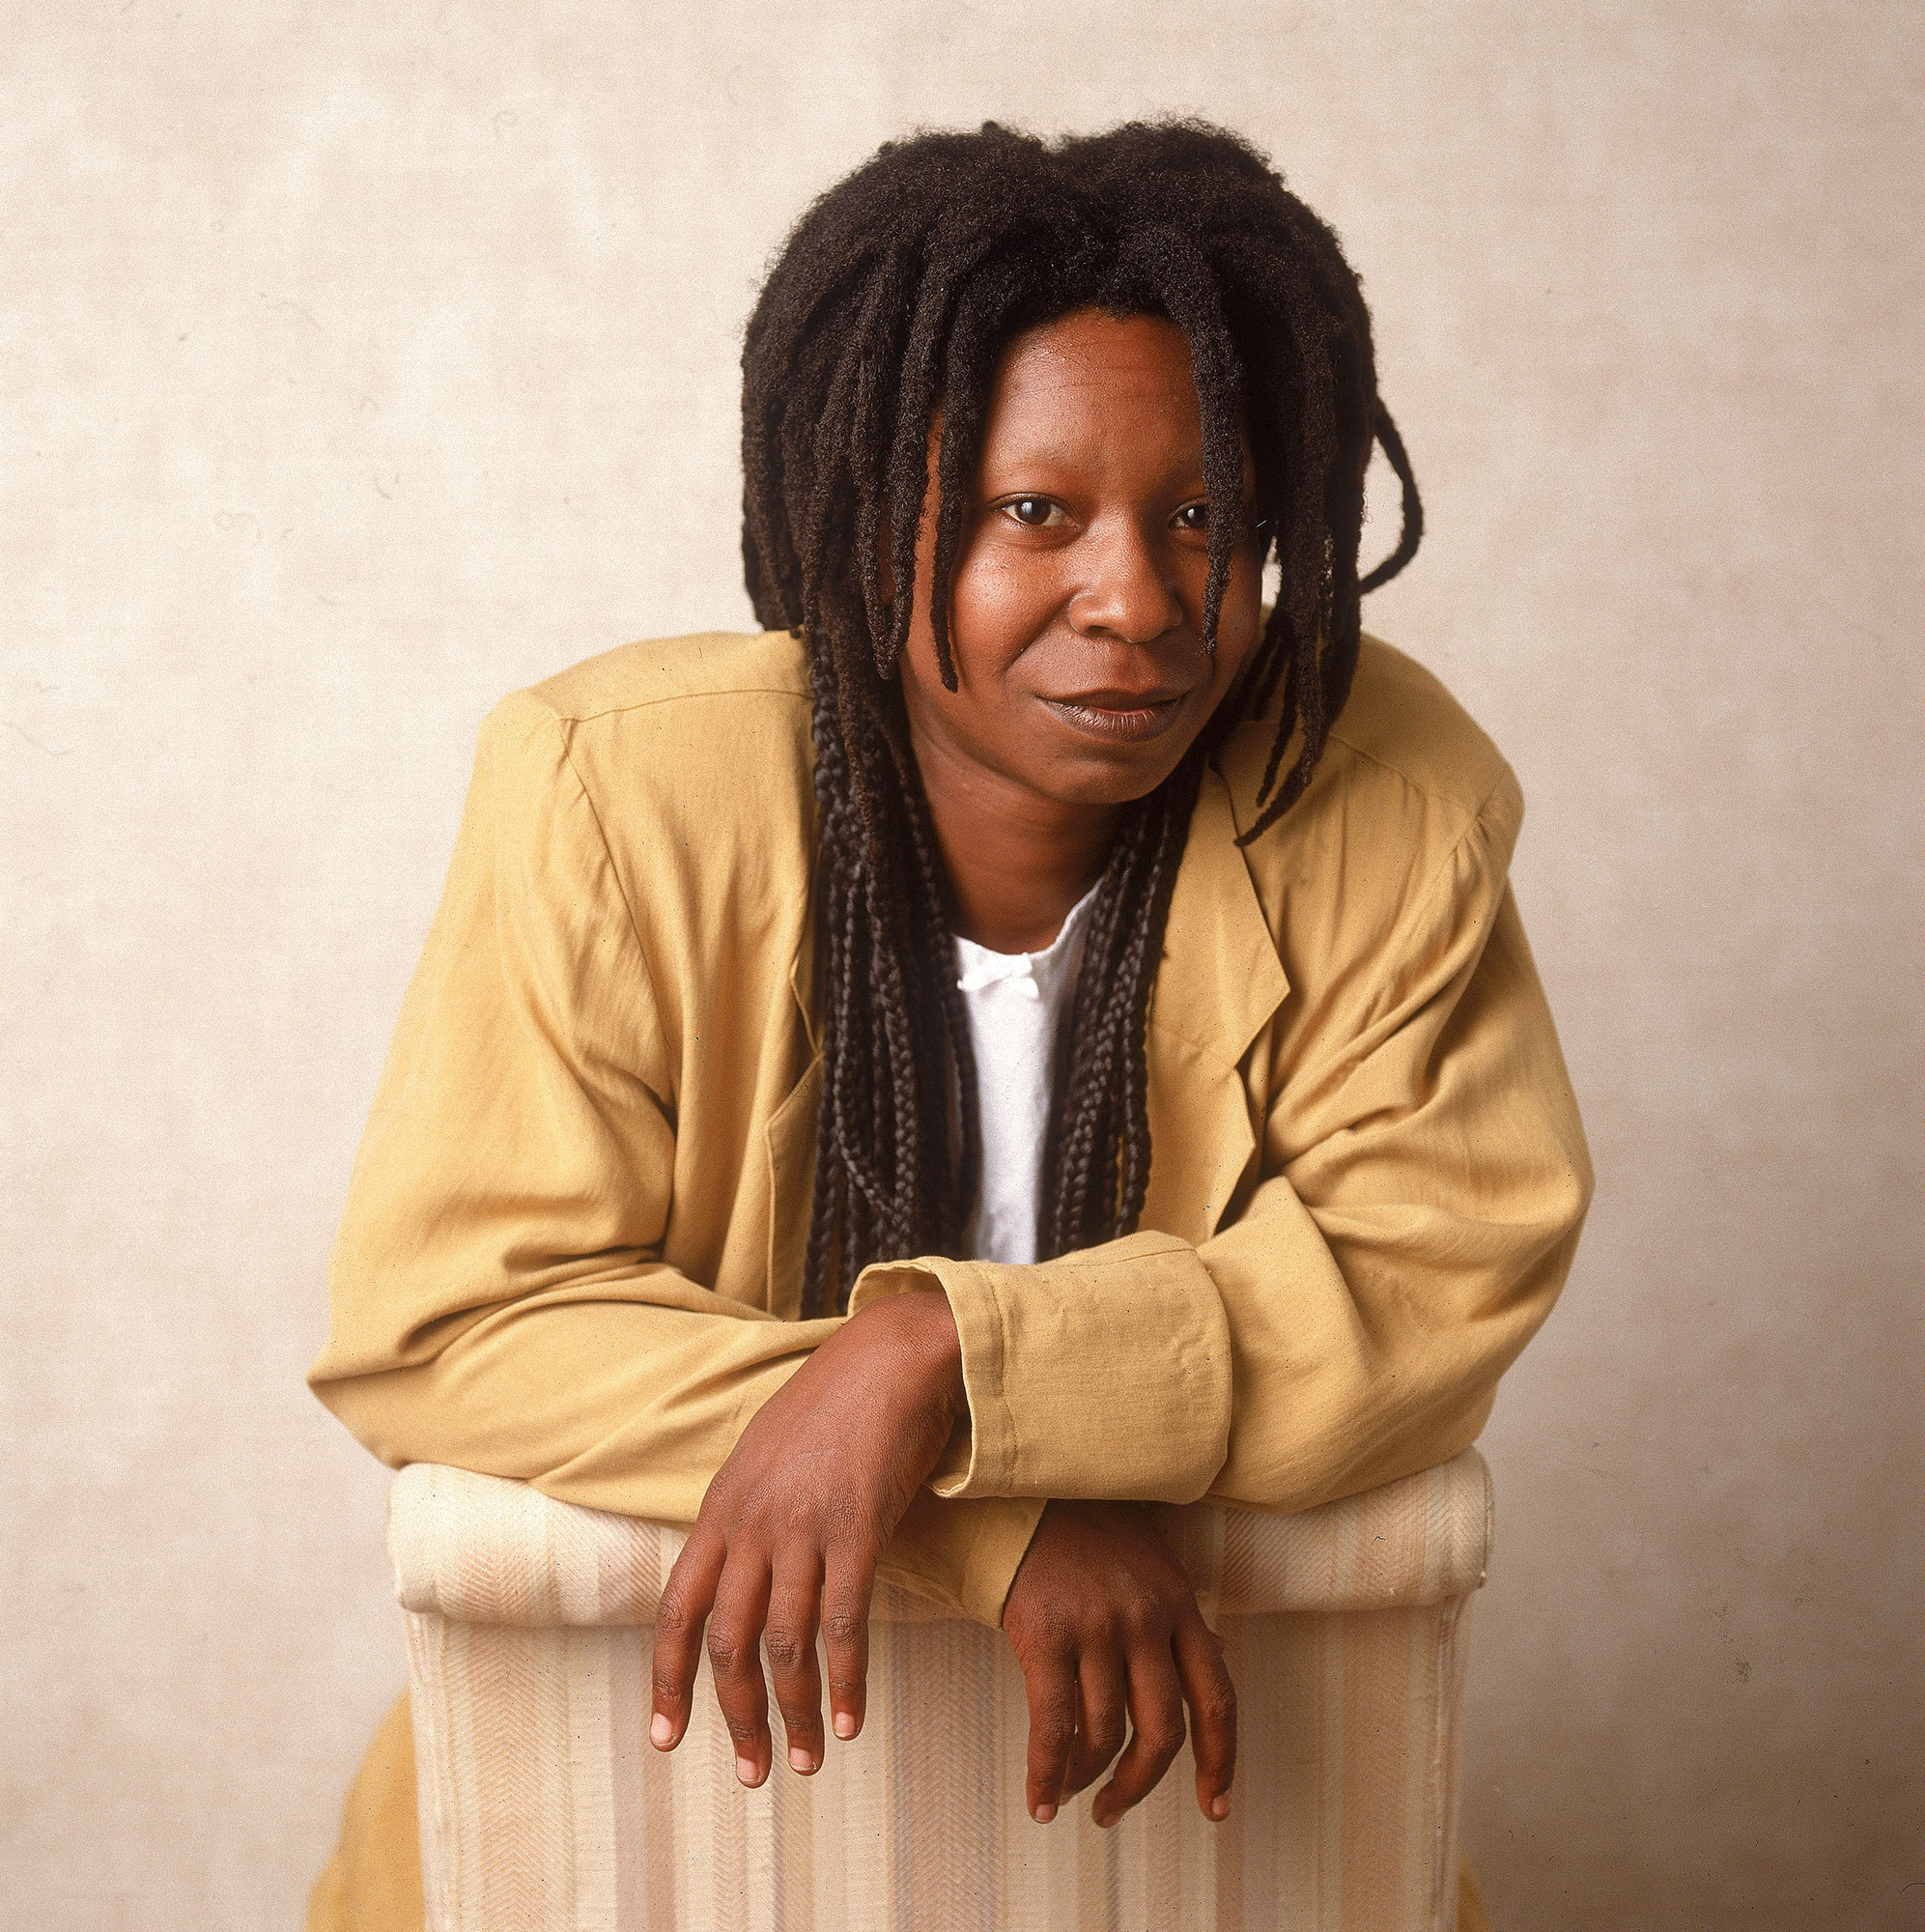 Stars You Wouldn't Expect to Be Grammy Nominees or Winners - The EGOT winner scored Best Comedy Recording in 1986 for Whoopi Goldberg - Original Broadway Show Recording .